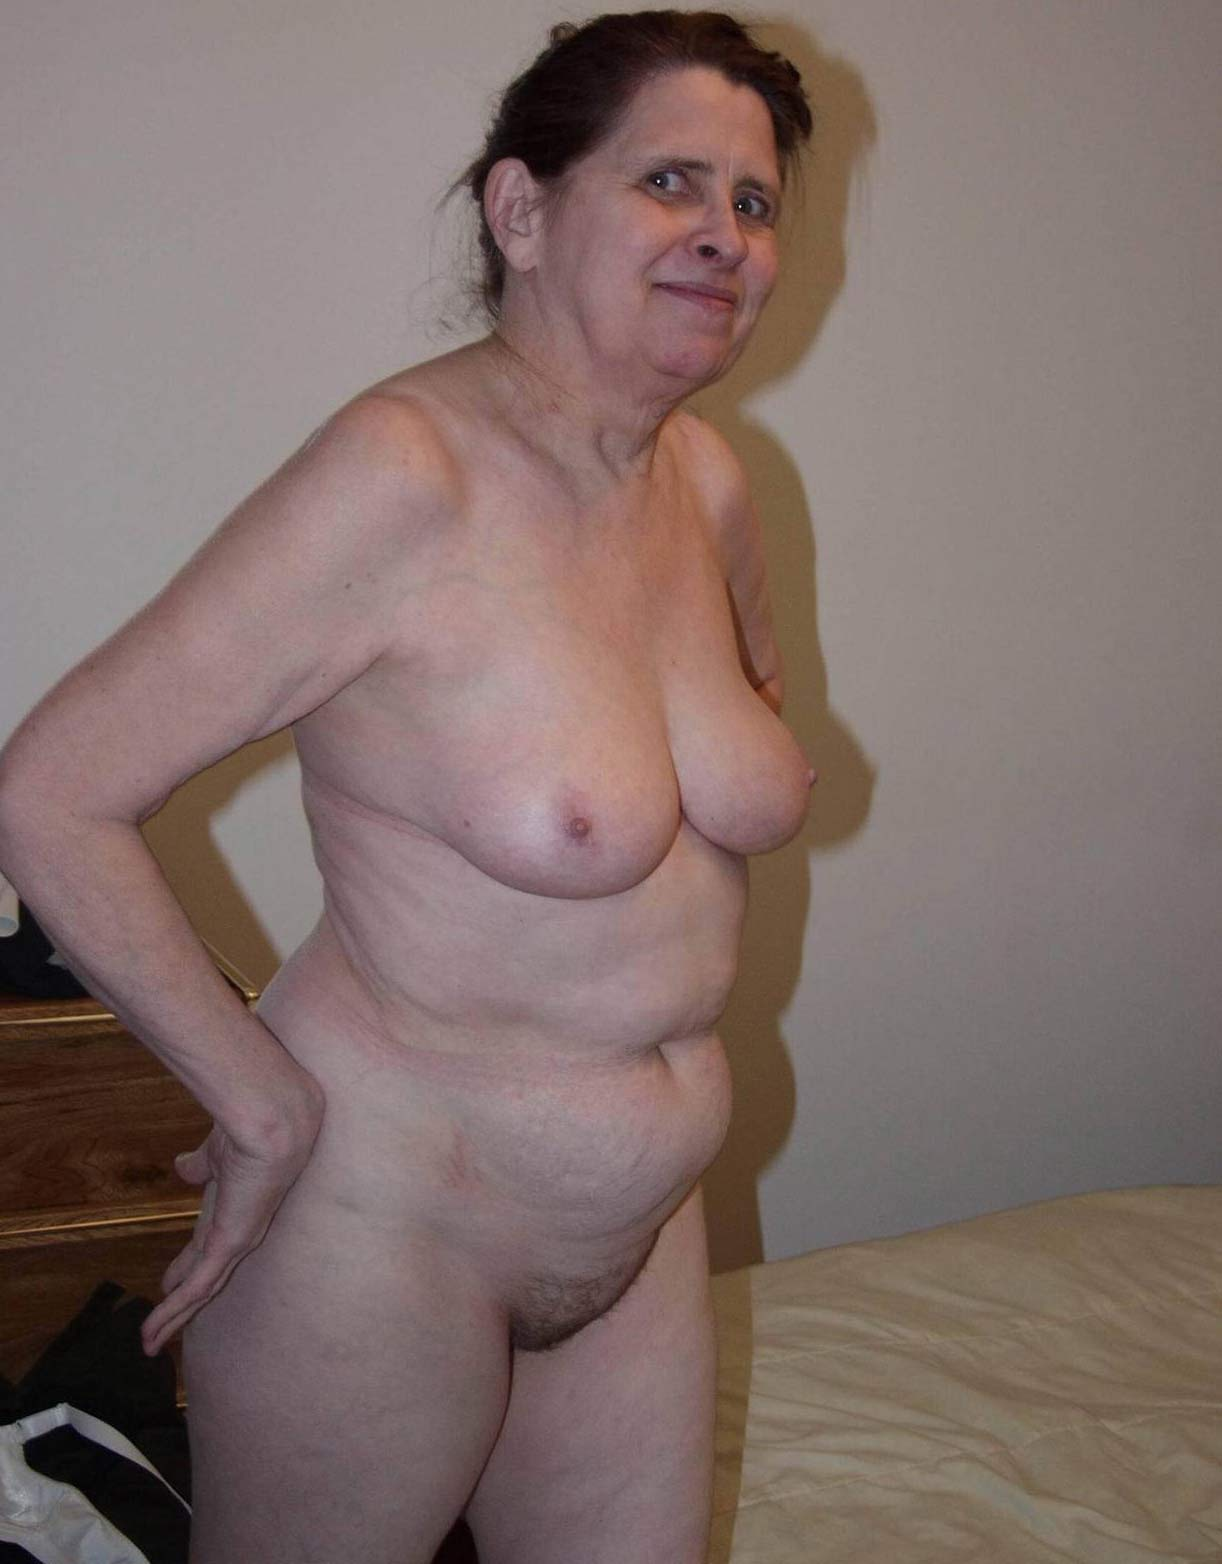 Ugly Woman Naked